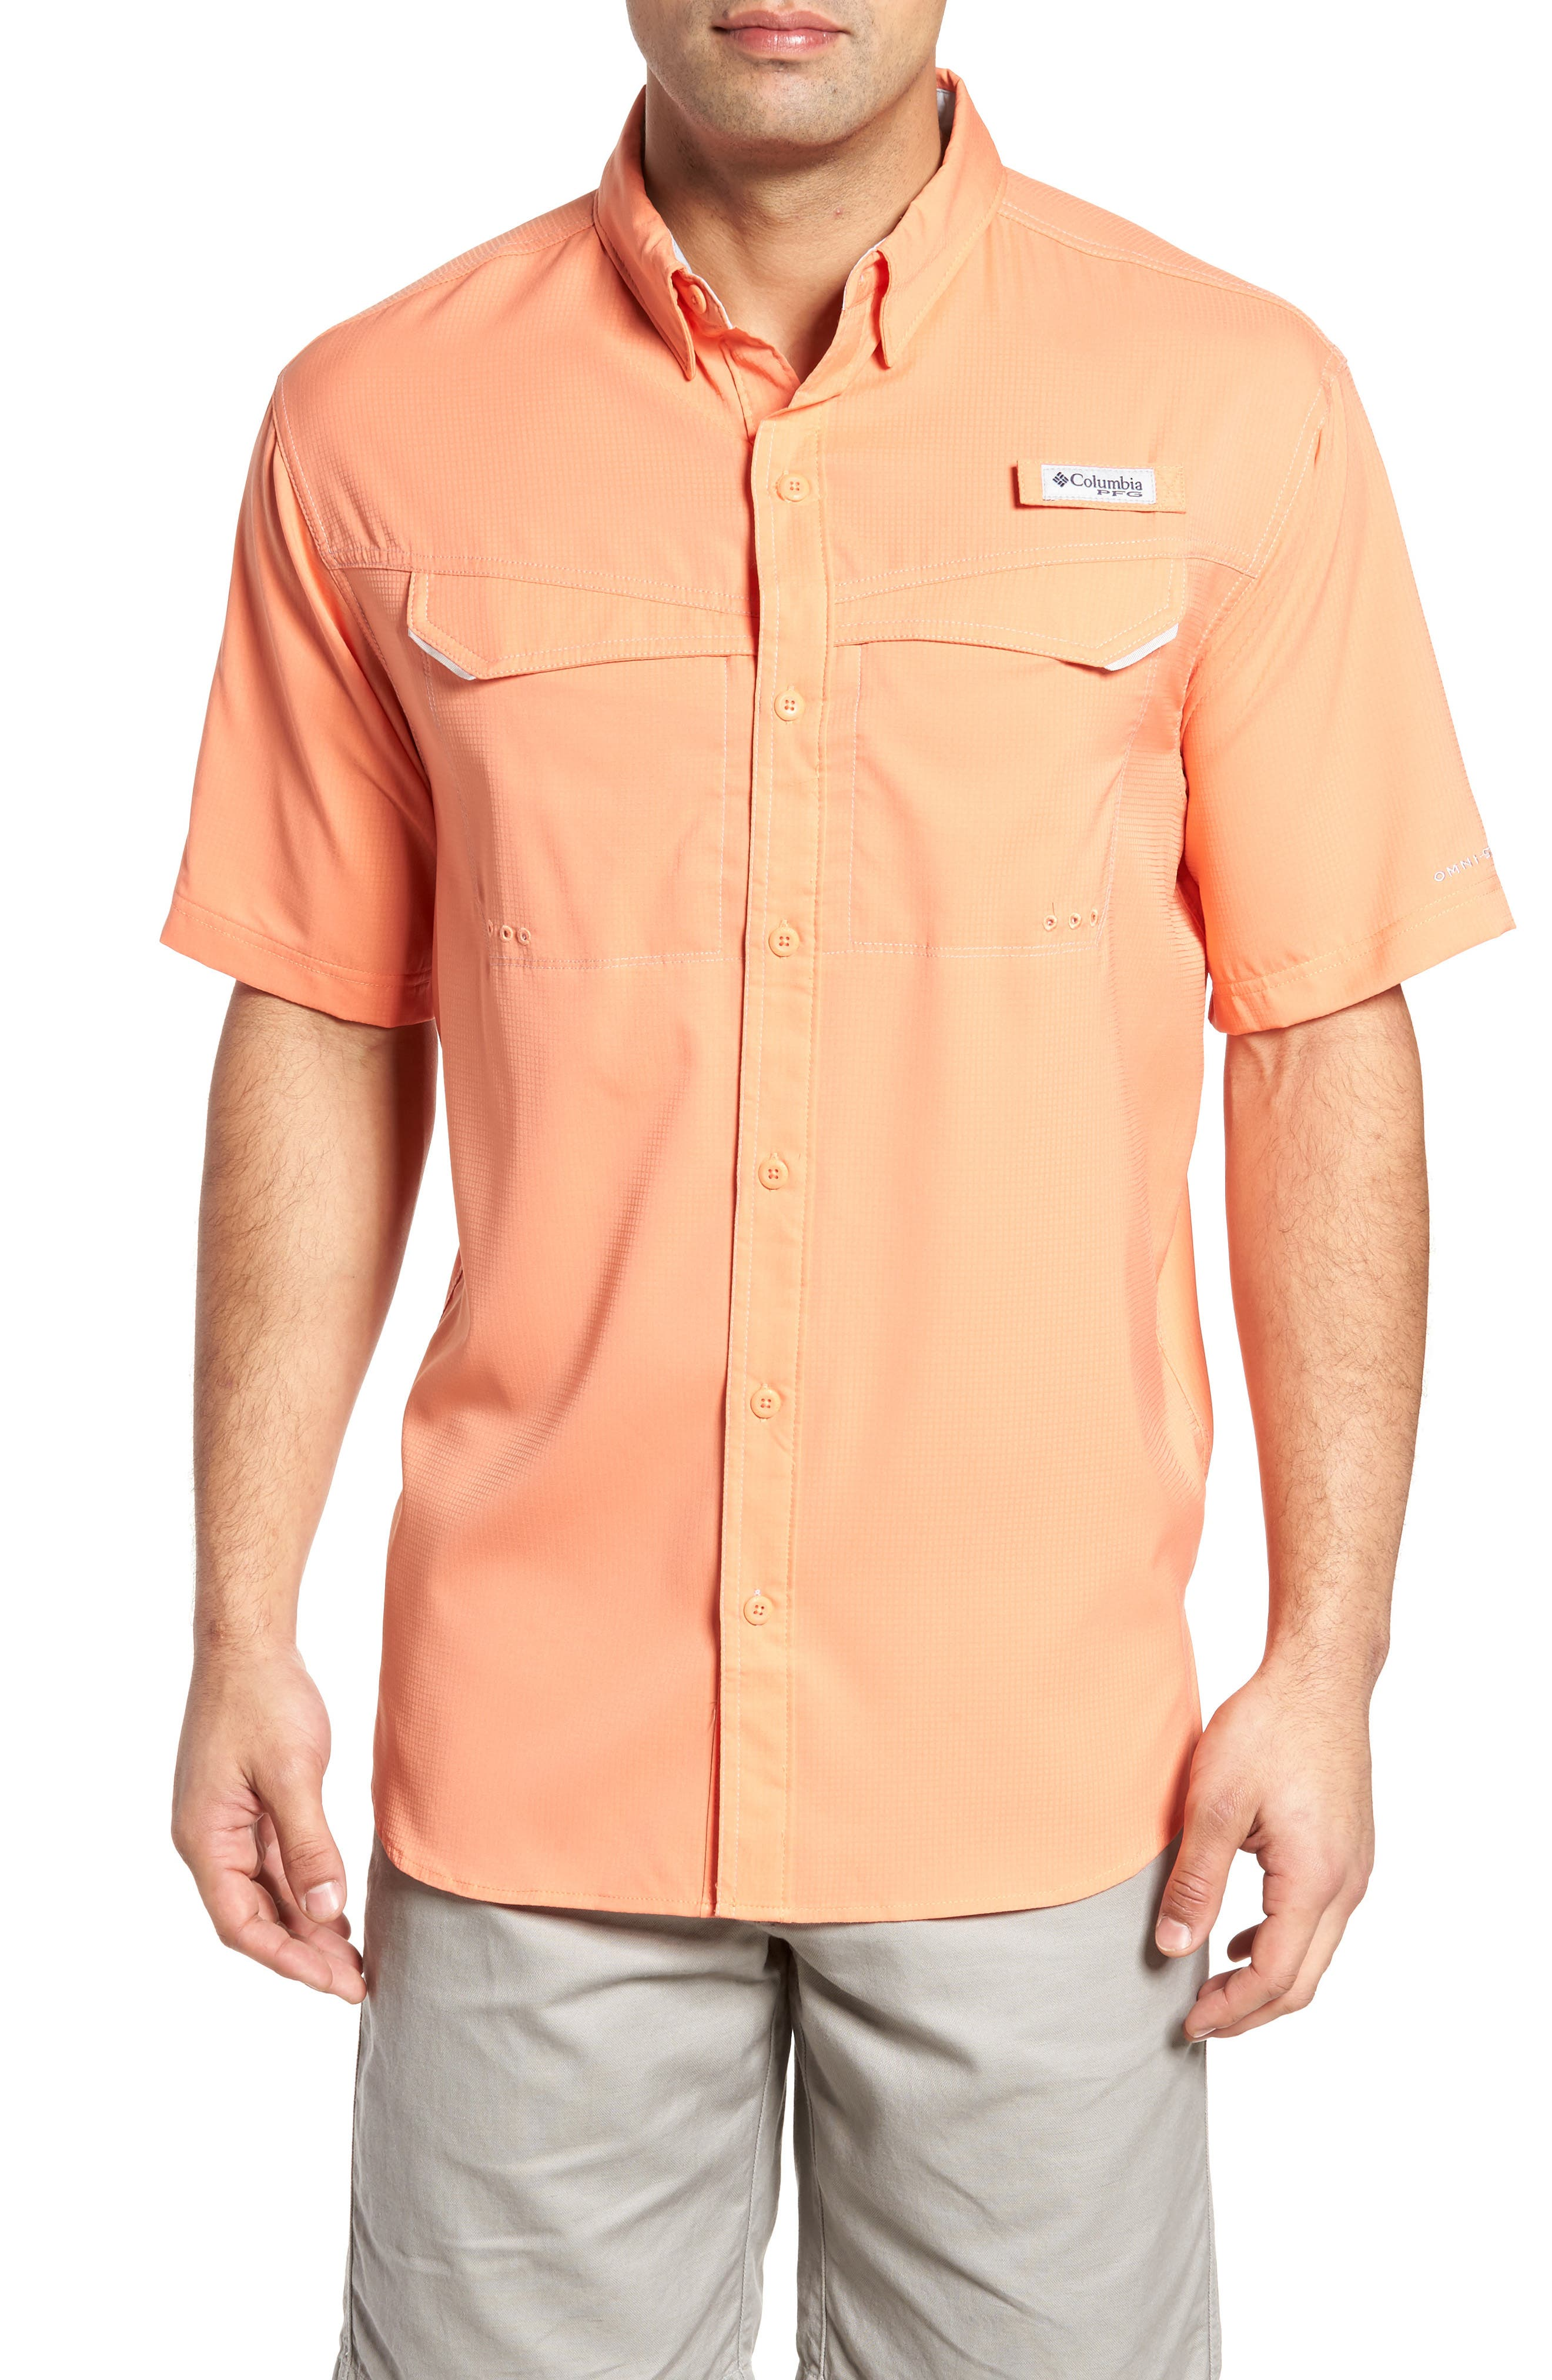 PFG Low Drag Offshore Woven Shirt,                             Main thumbnail 5, color,